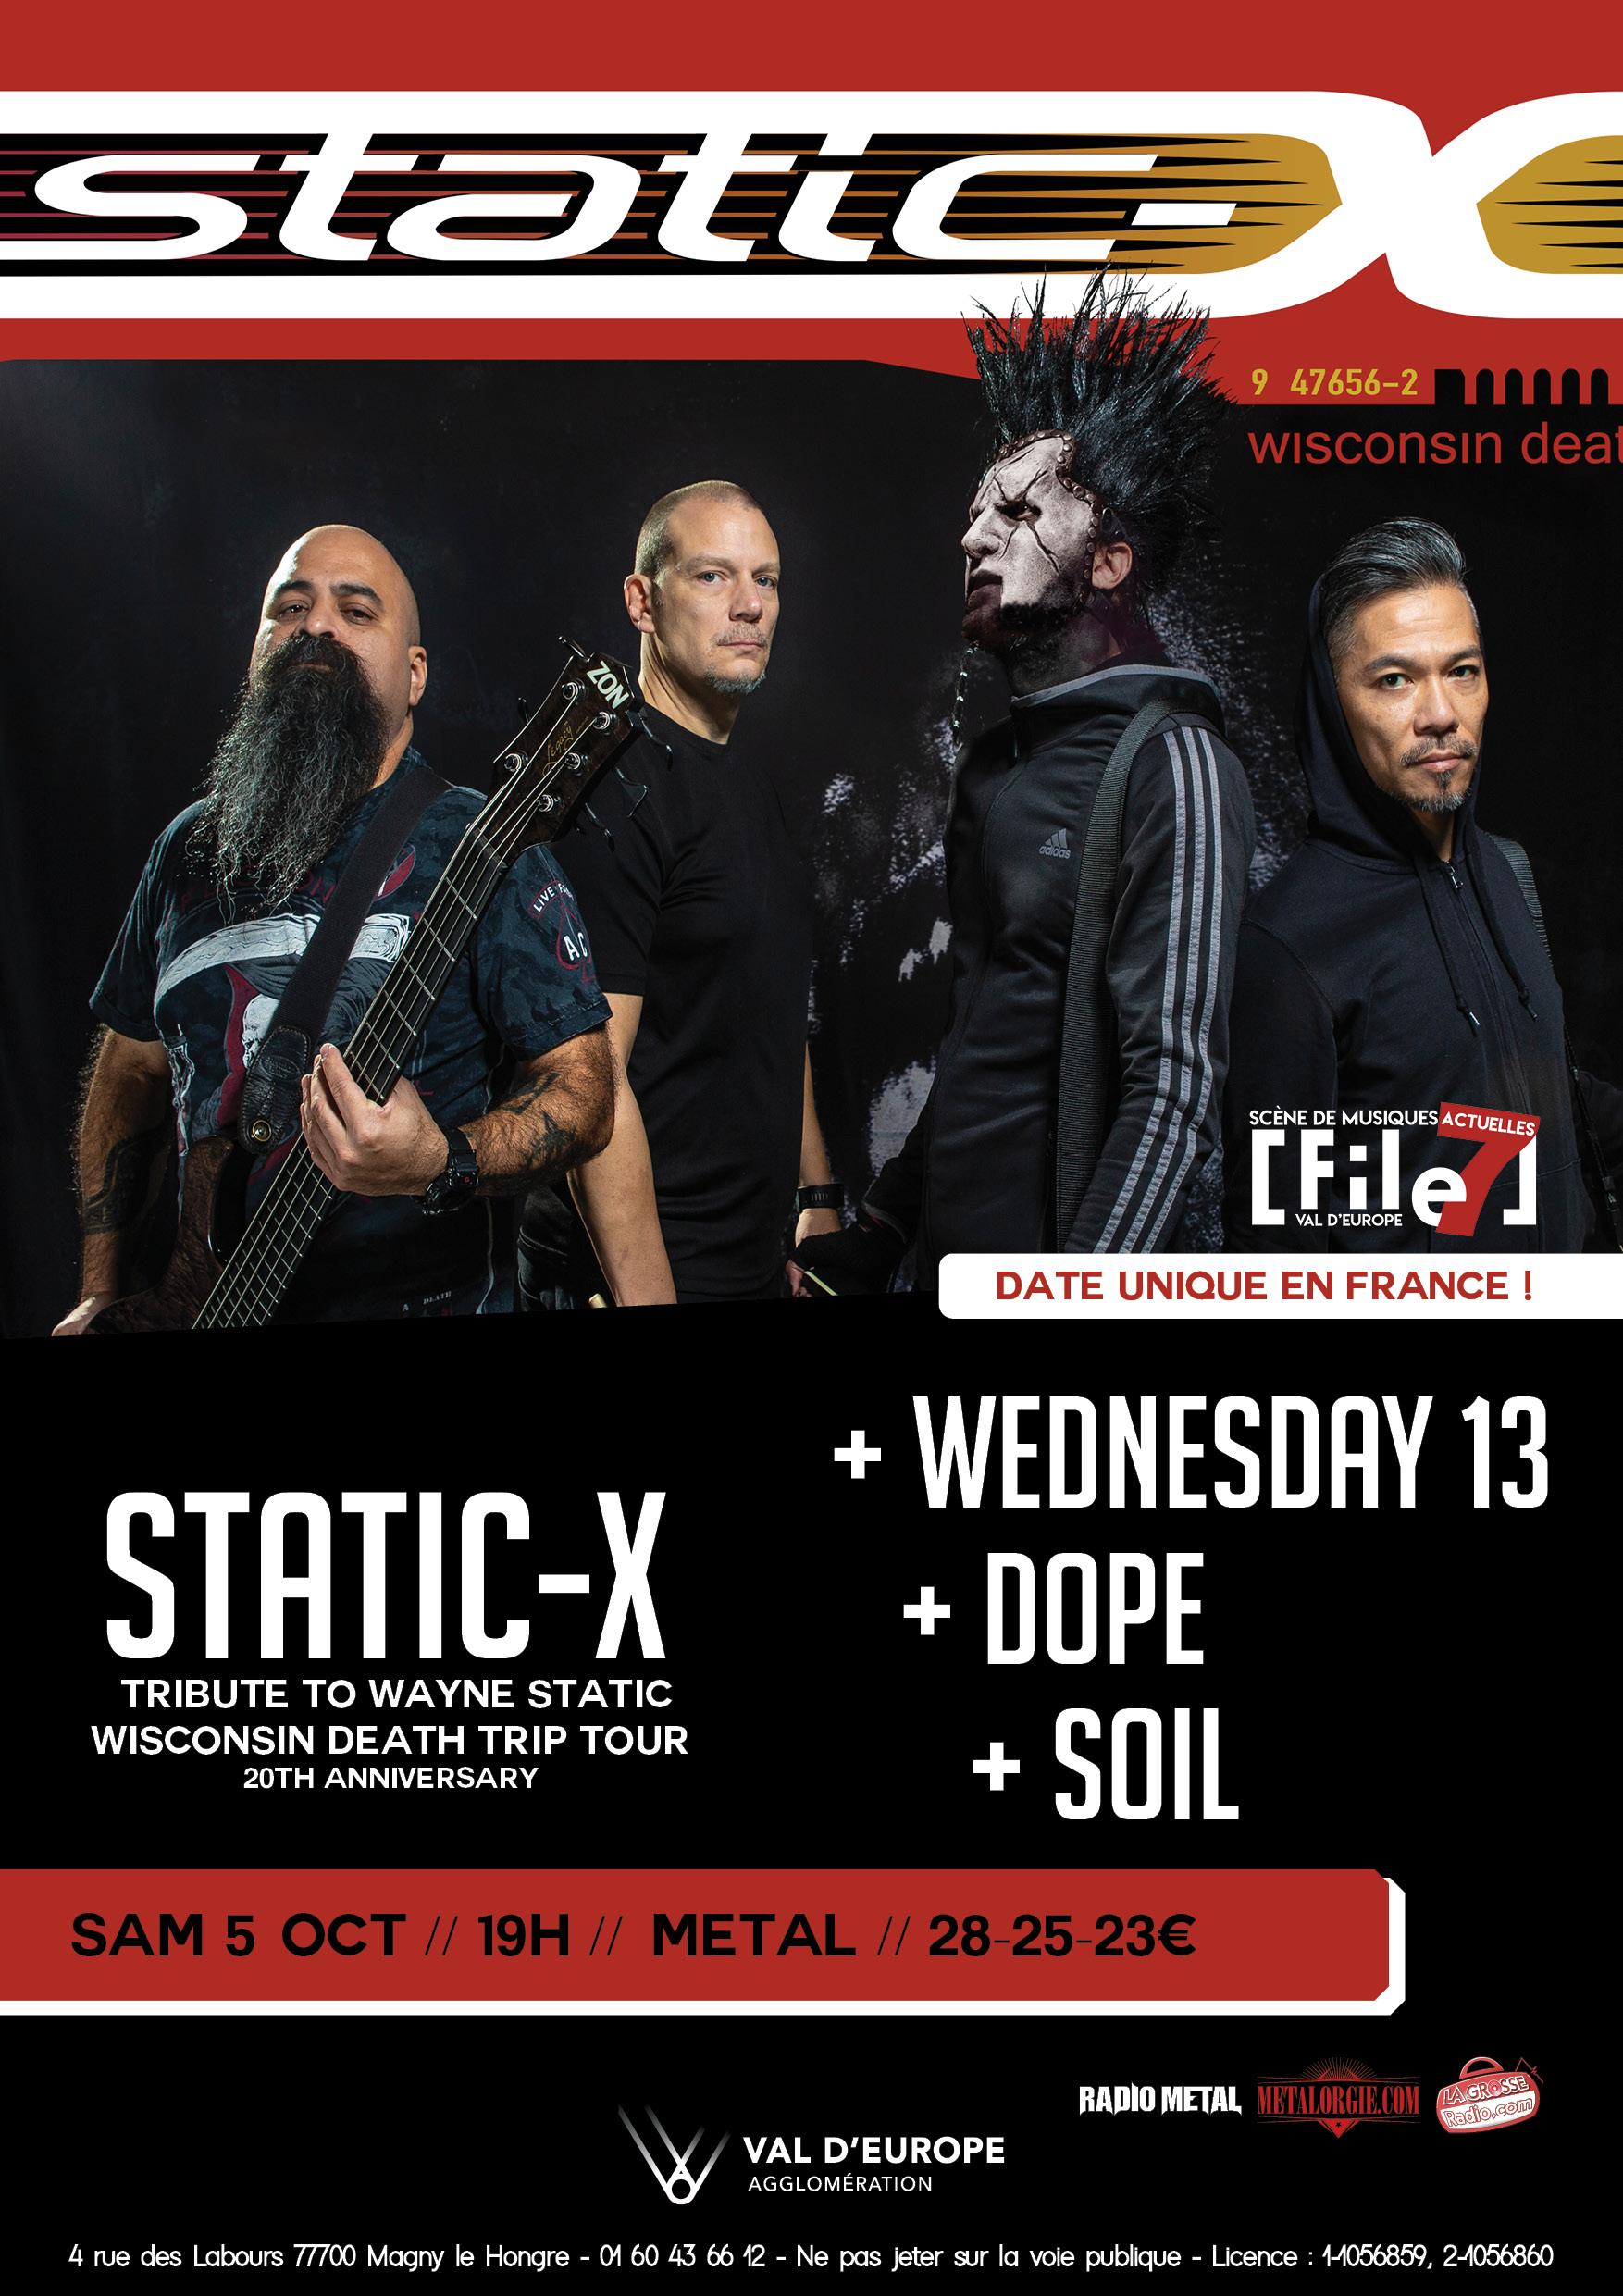 Static-X + Wednesday 13 + Soil + Dope @ File7 (Magny le Hongre), le 5 Octobre 2019